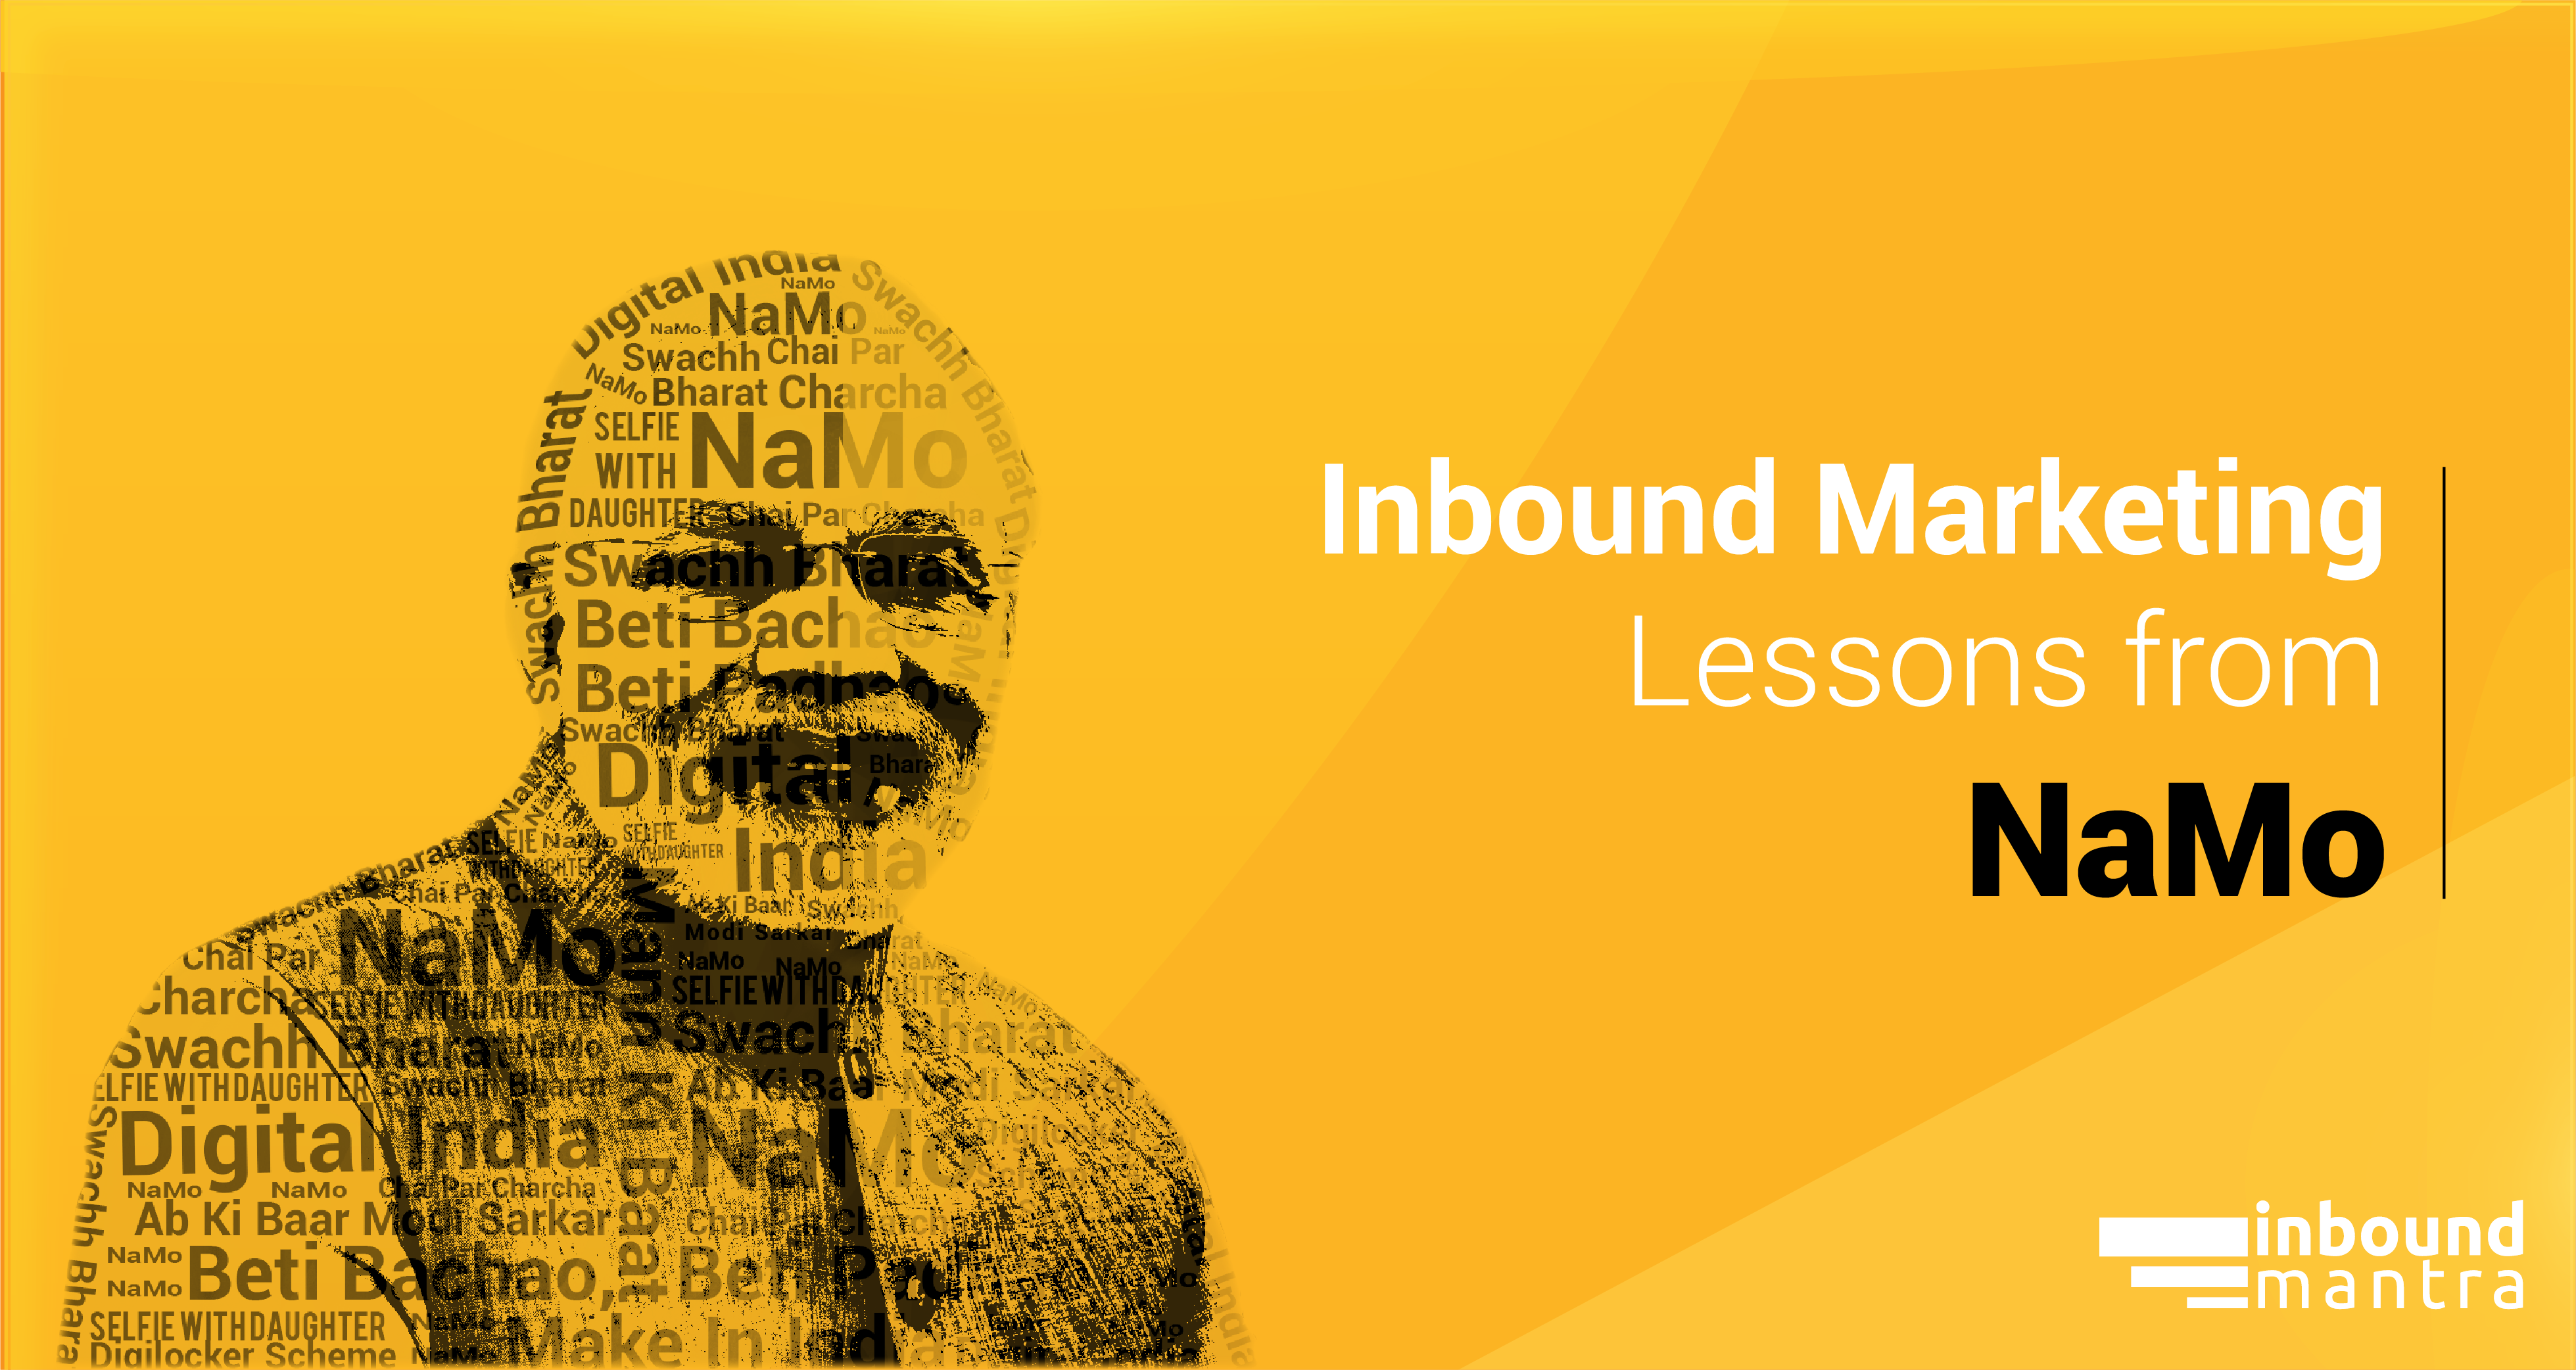 Inbound Marketing Lessons from NaMo